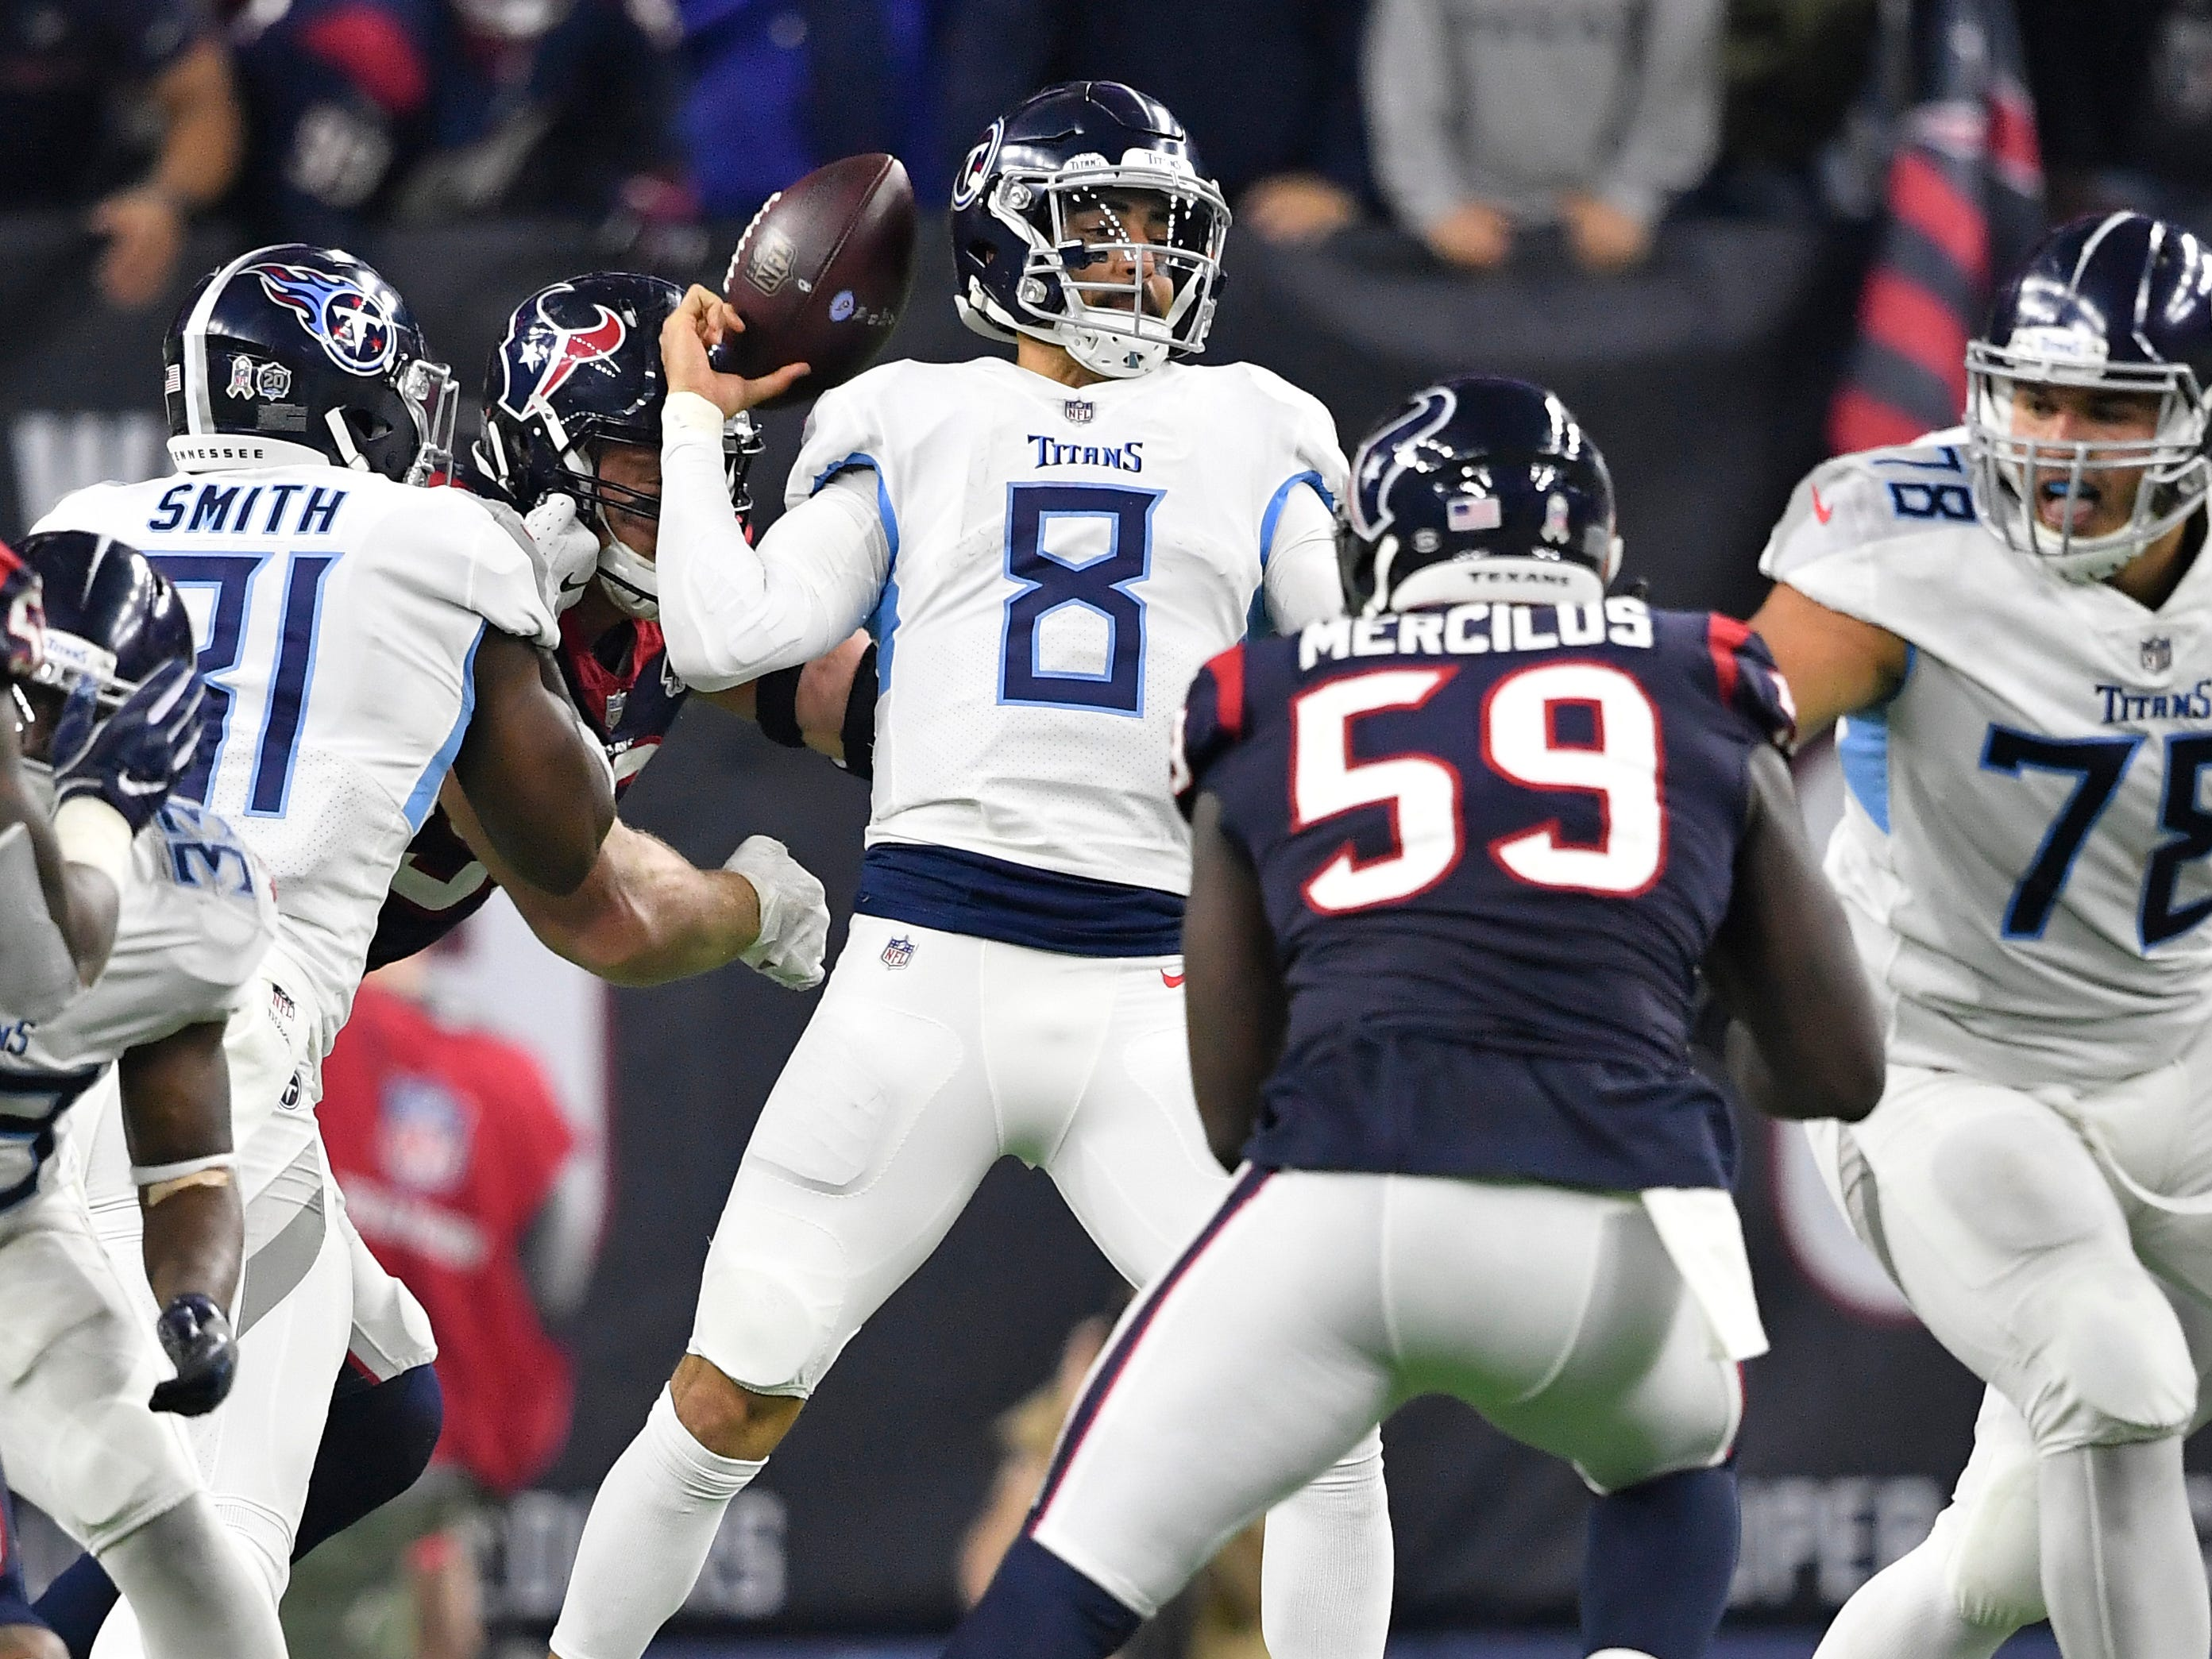 Titans quarterback Marcus Mariota (8) loses the ball when sacked by Texans defensive end J.J. Watt (99) in the fourth quarter at NRG Stadium Monday, Nov. 26, 2018, in Houston, Texas.